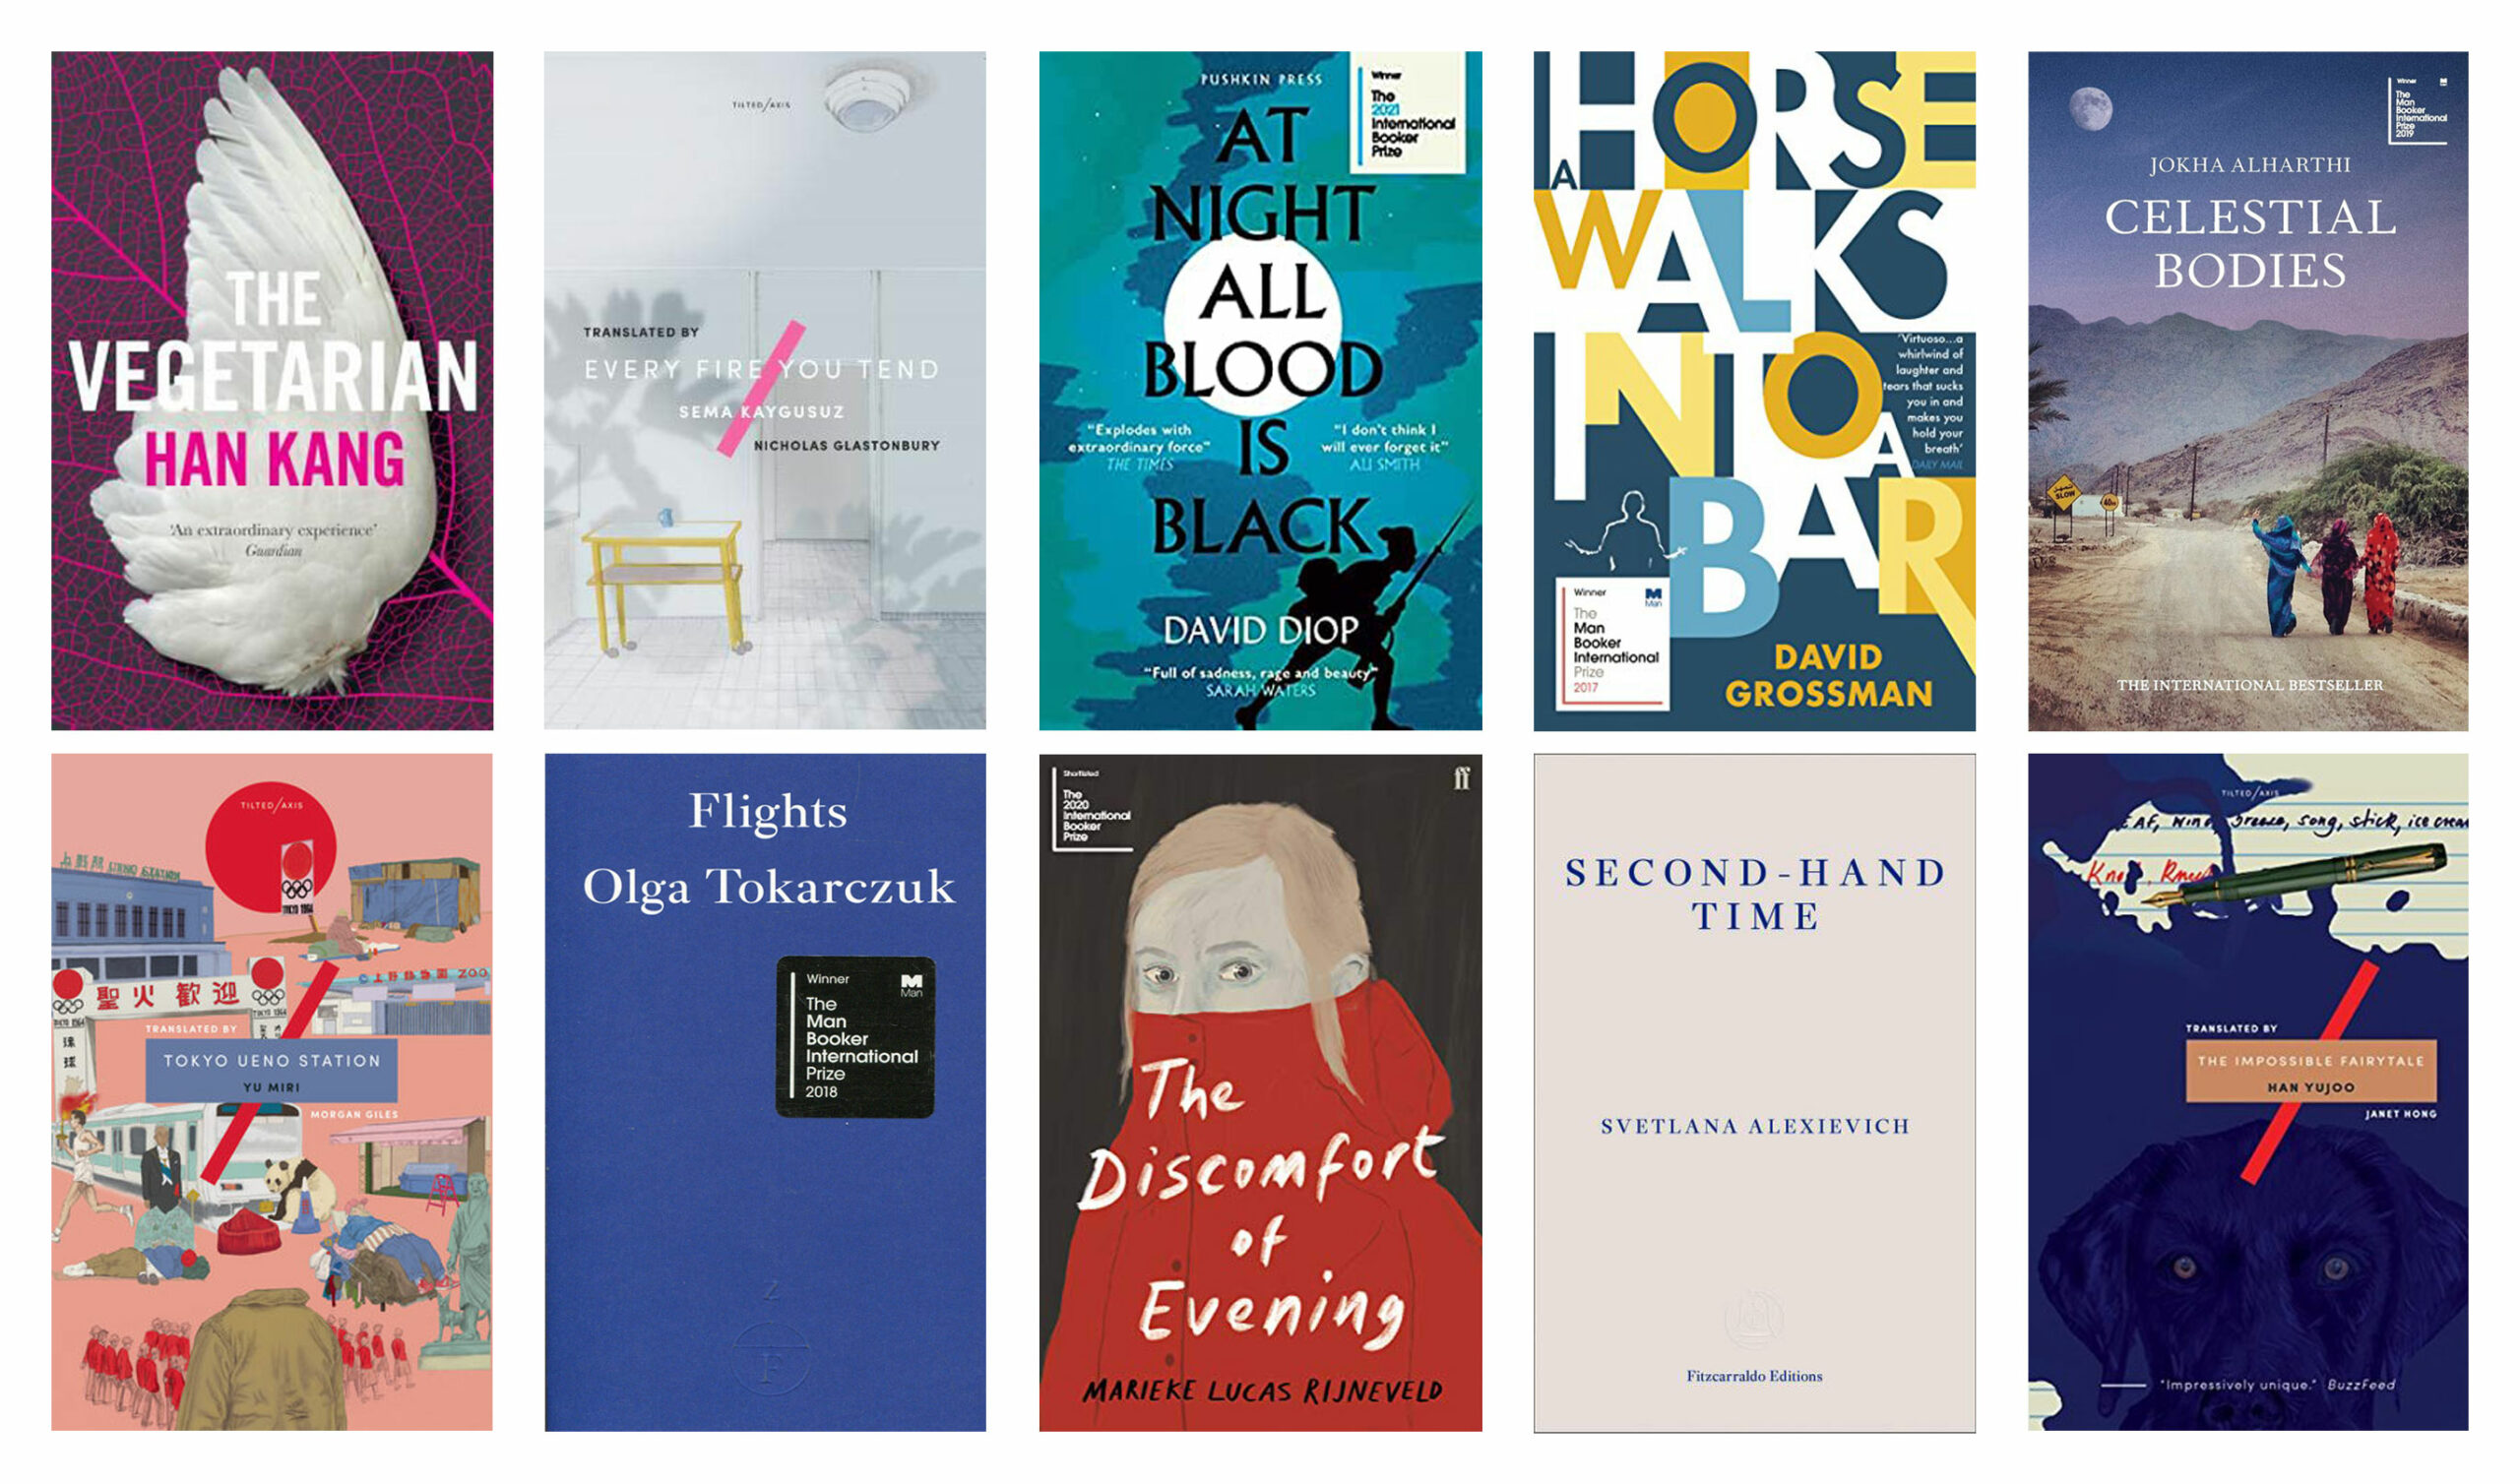 On UN International Translation Day the UK Society of Authors launched a campaign calling for full book-cover credits for translators